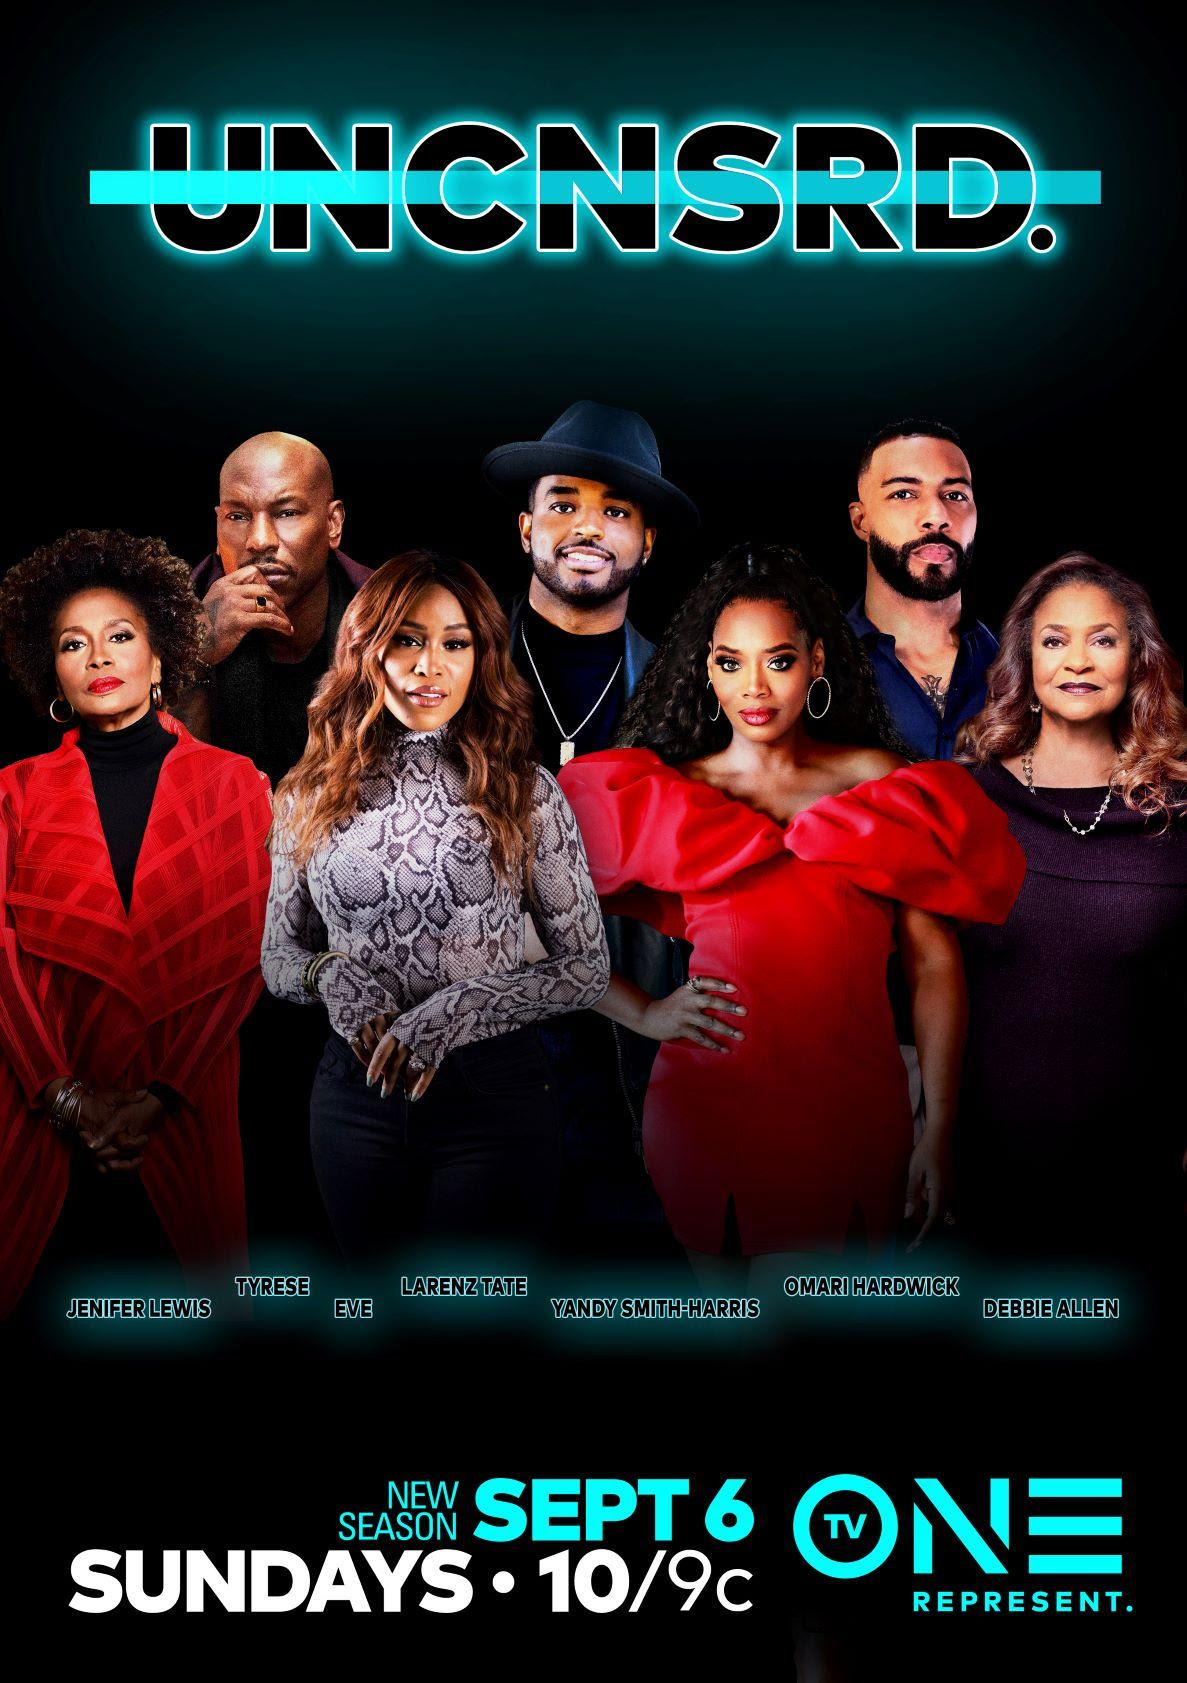 Omari Hardwick, Tyrese Gibson, Jenifer Lewis, and rapper Eve among this season's stars on TV One's Hit Series, 'Uncensored' faith health and home lifestyle blog 2